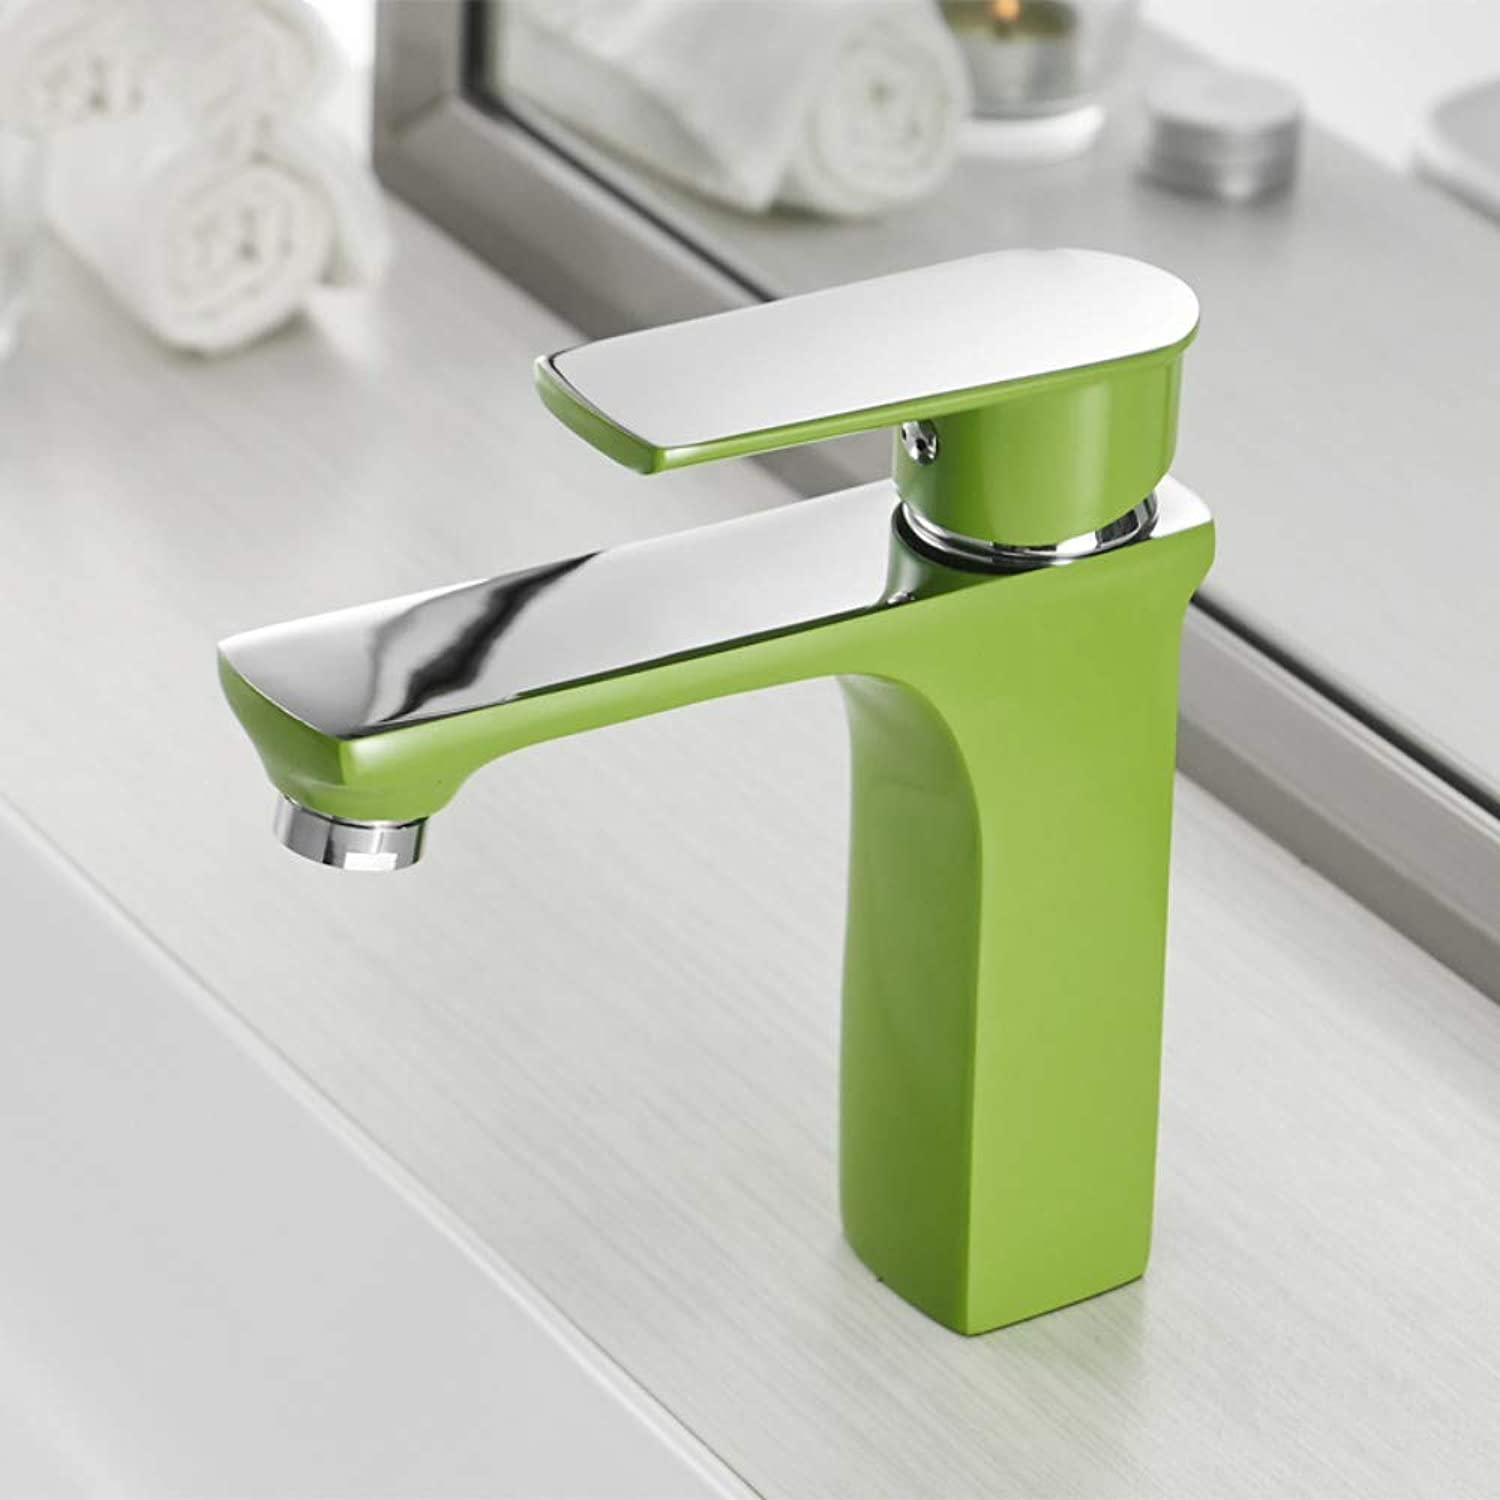 A-YSJ Faucet Basin Faucet Cold and Hot Green Water Taps orange White Fashion Style Bronze Single Hole Bathroom Mixer Faucet,1